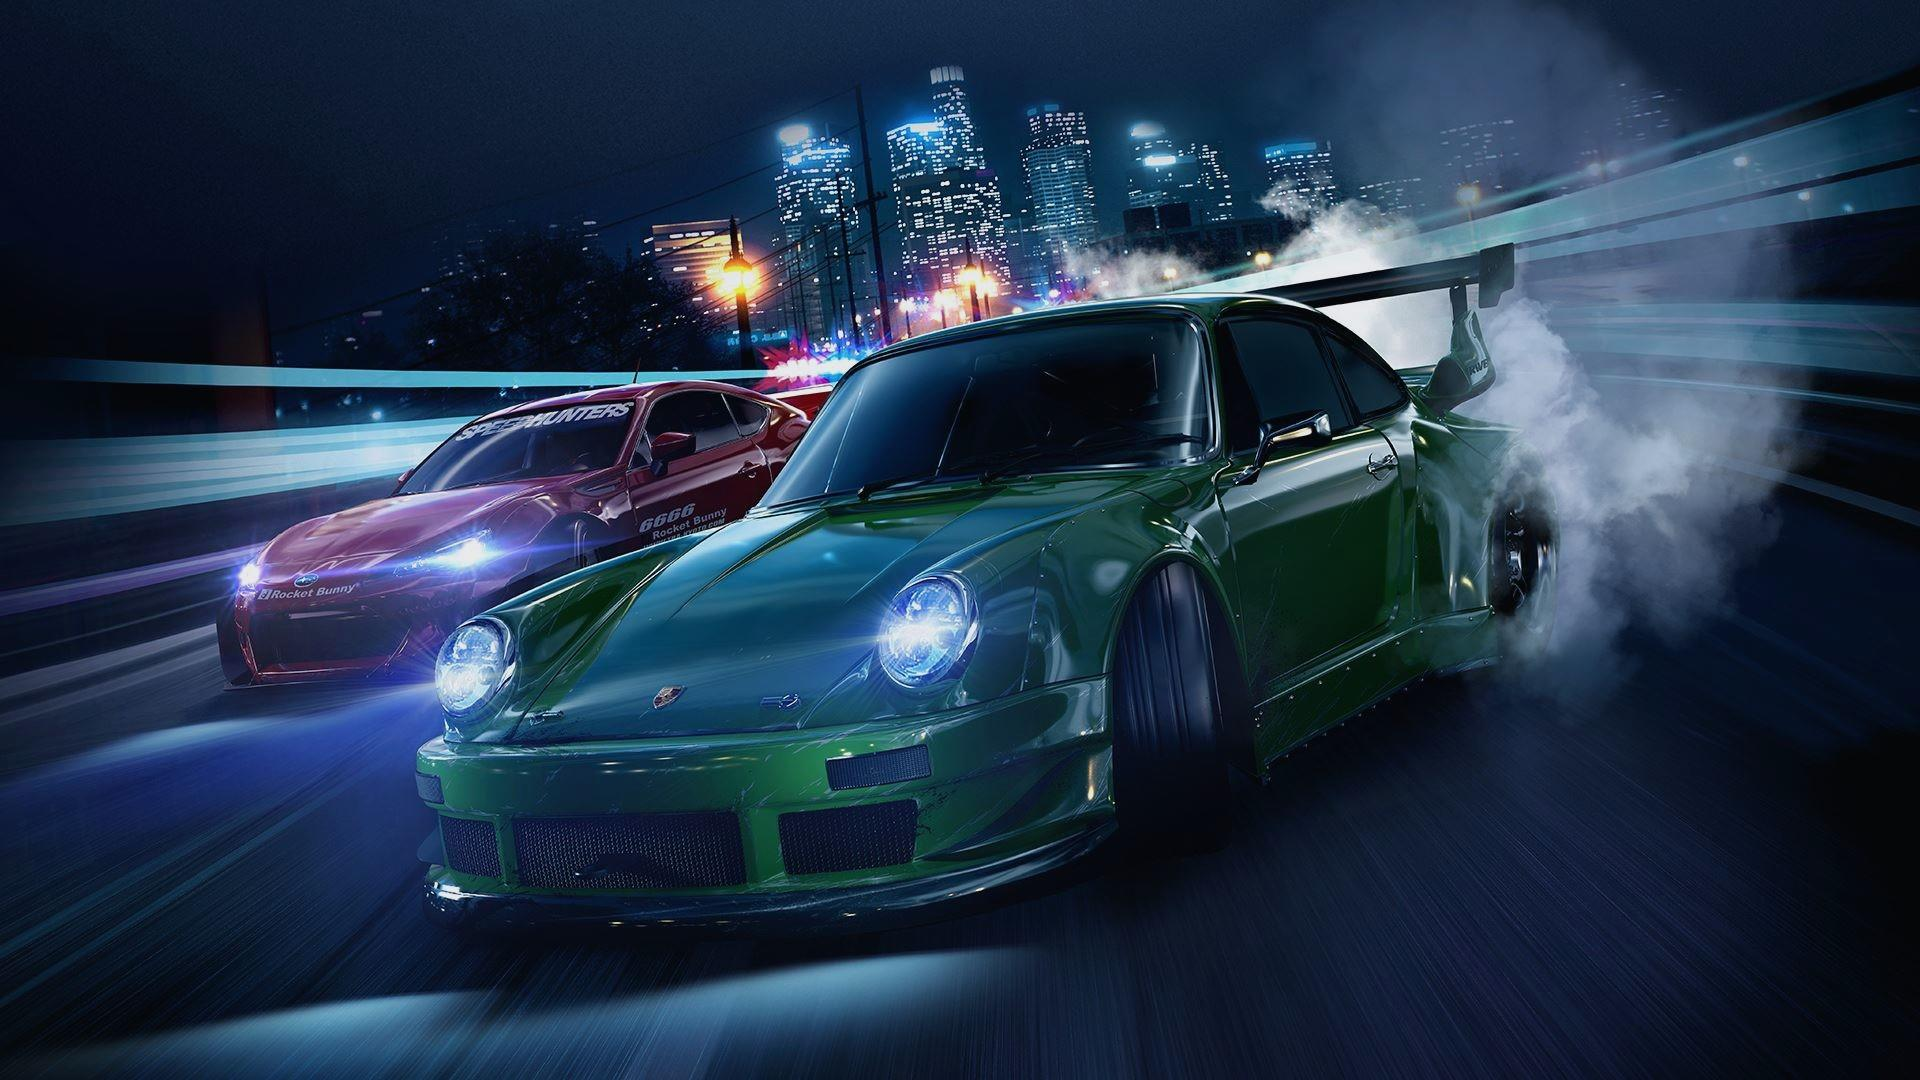 Need For Speed wallpapers HD quality